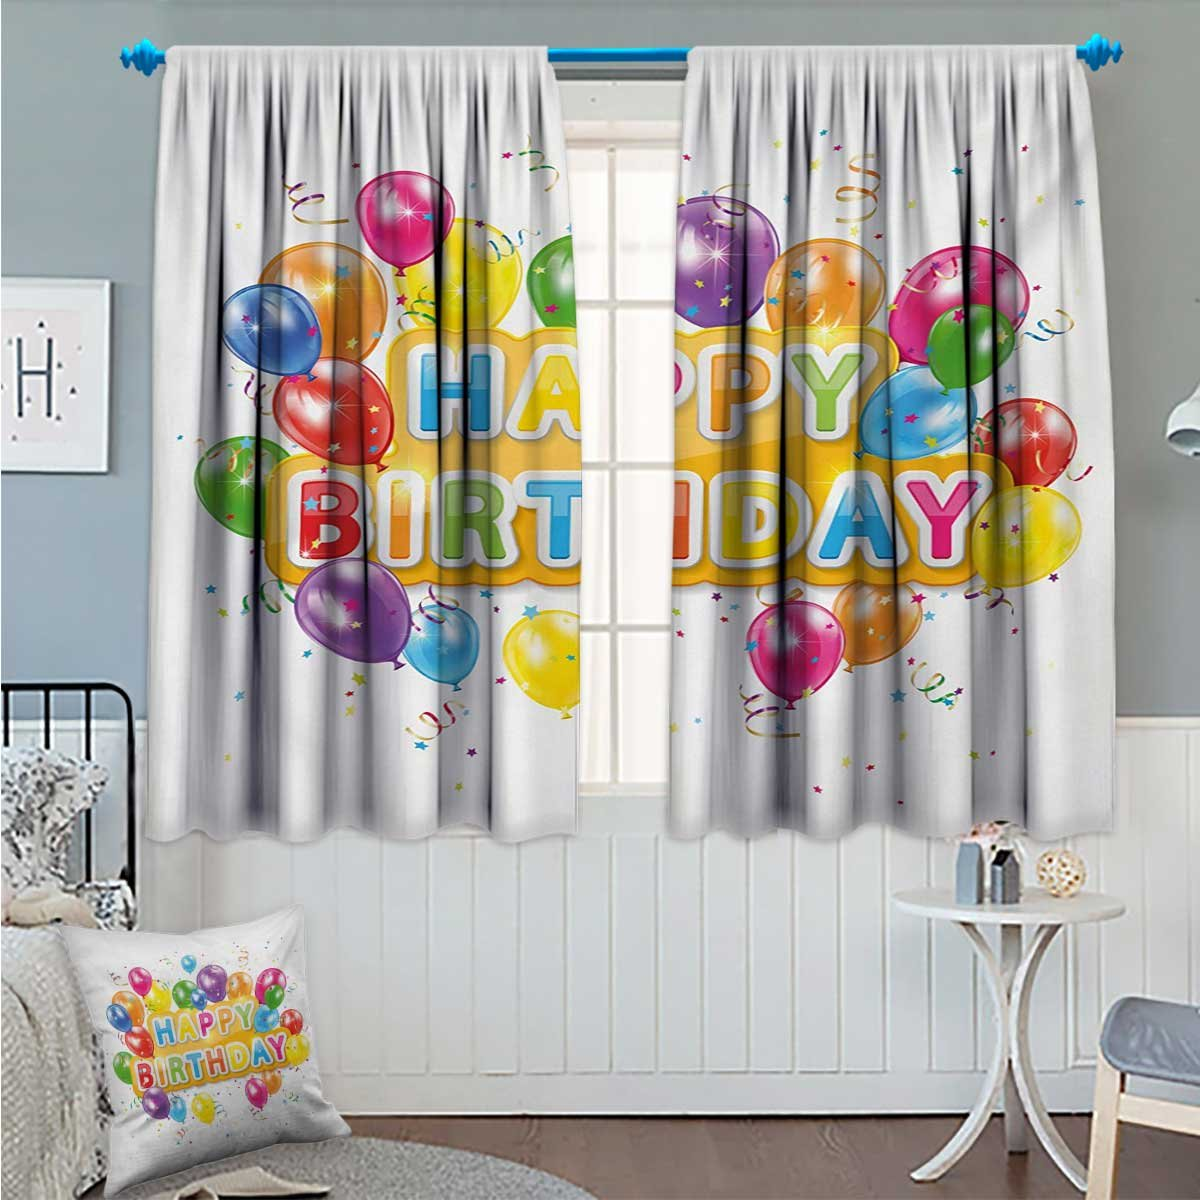 Angoueleven Birthday Thermal/Room Darkening Window Curtains The Words Happy Birthday with Vivid Balloons Confetti Rain Blithesome Happy Day Decor Curtains by Multicolor Size:72''x63''